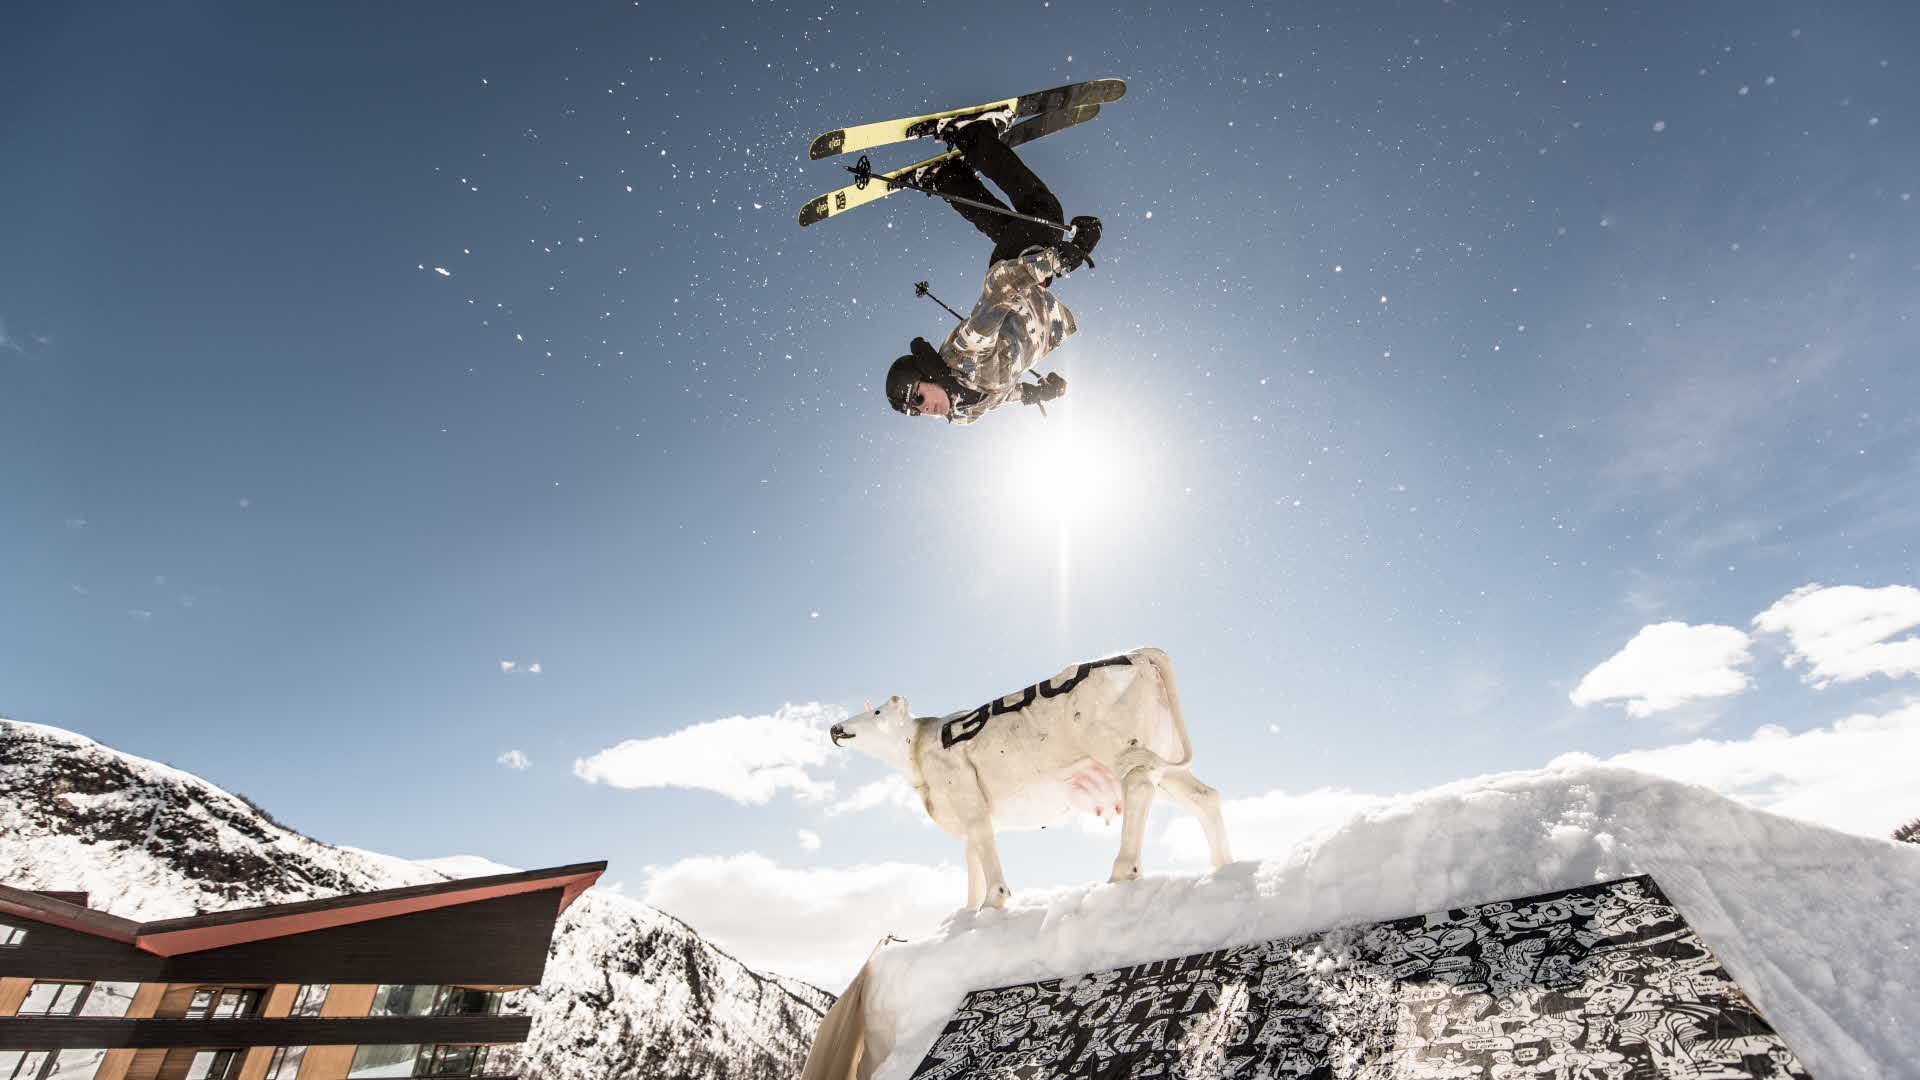 Man in alpine downhill gear doing front flip over a white cow statue in Myrkdalen Ski Resort on a sunny winter day